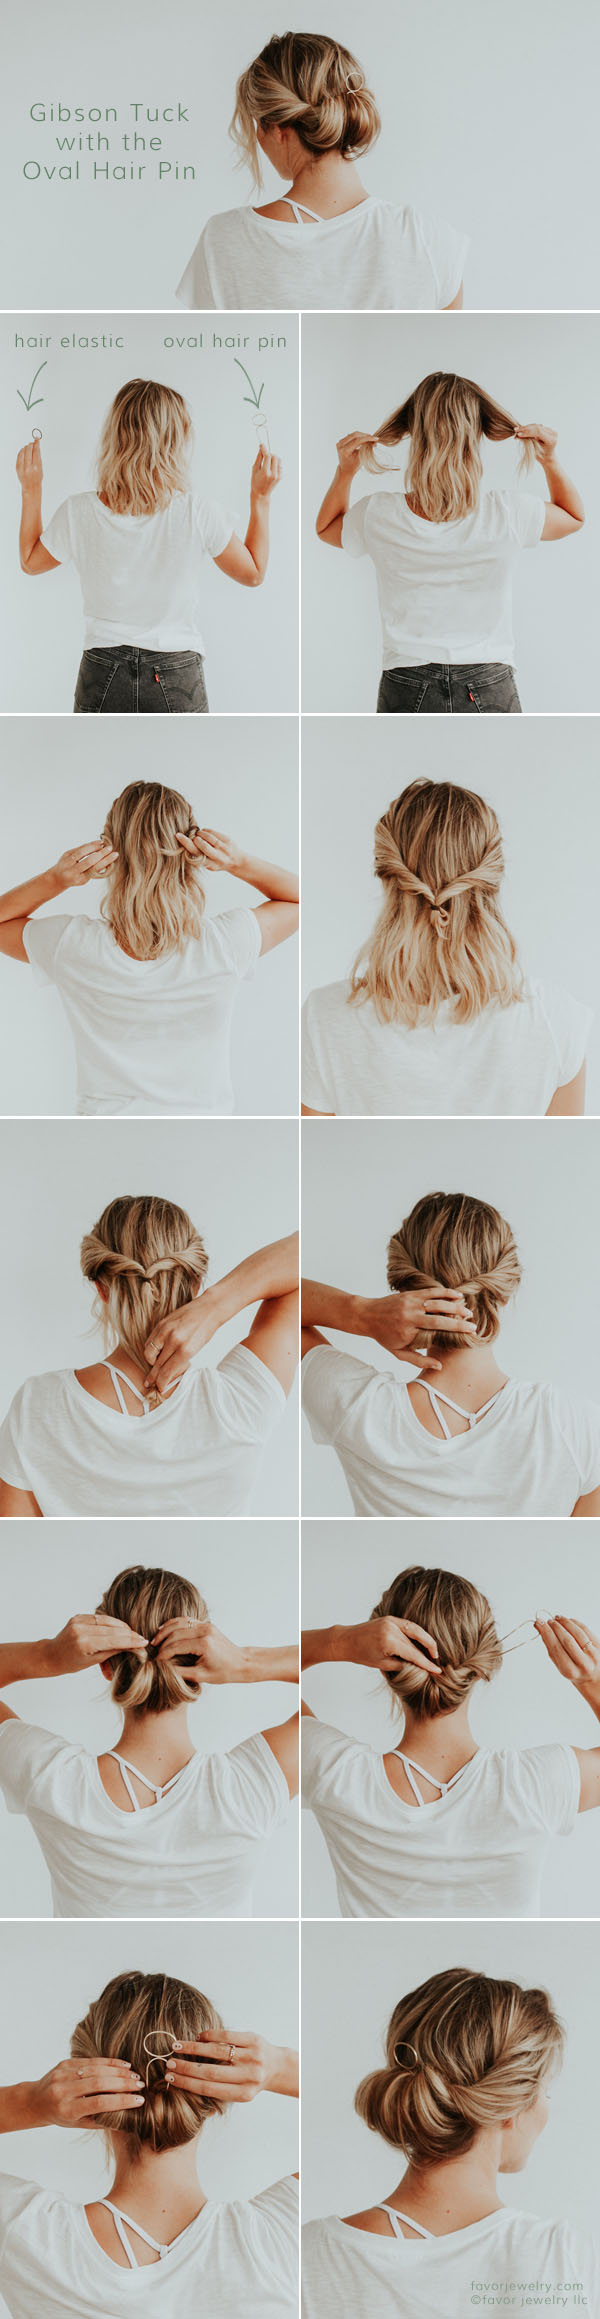 Romantic Gibson Tuck Hair Tutorial with Modern Hair Pin by Favor Jewelry